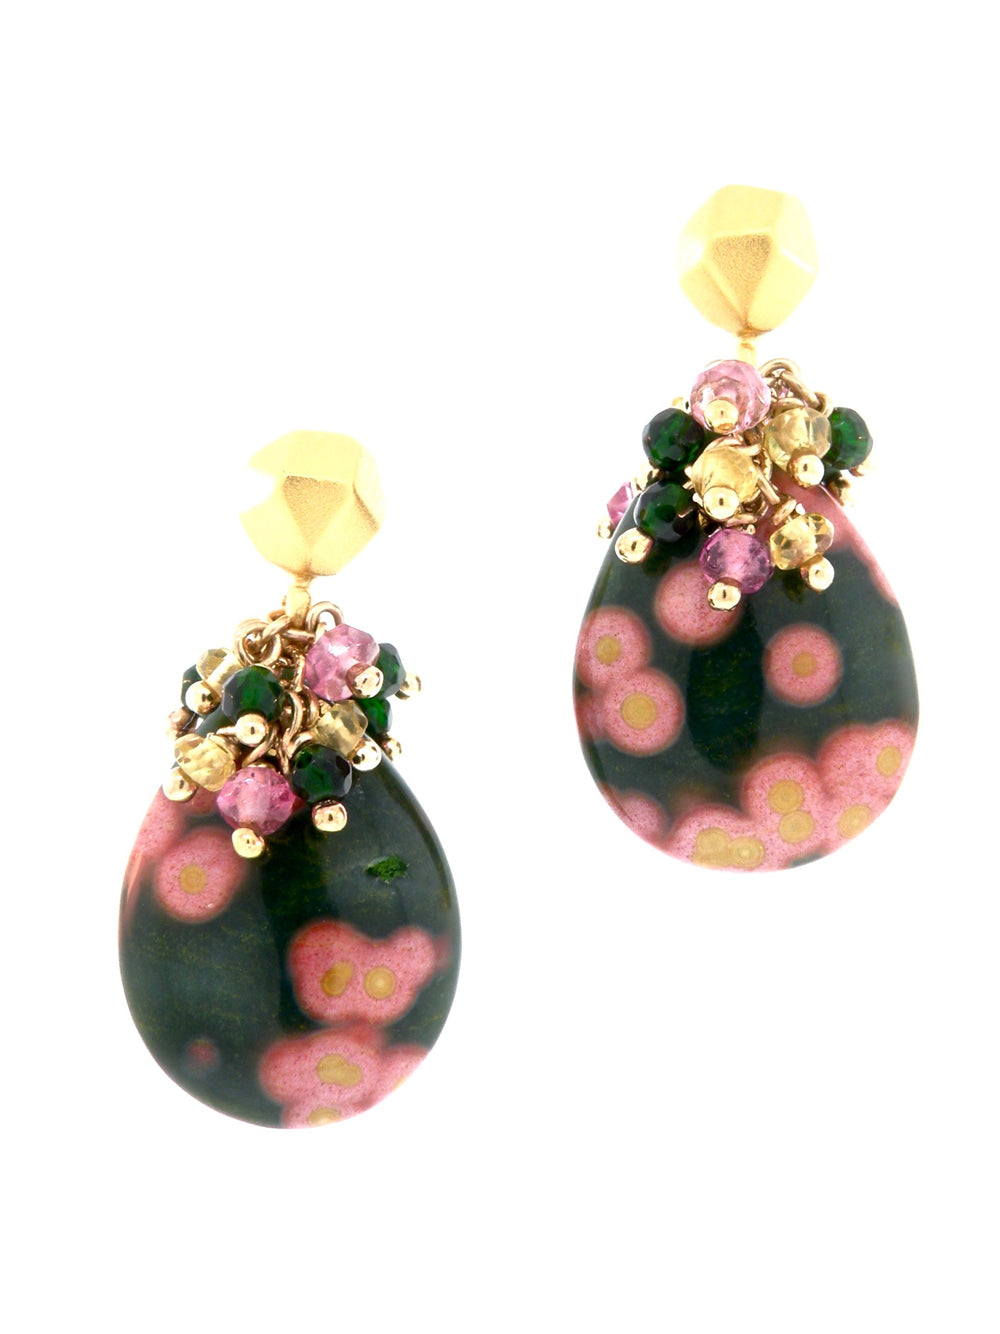 Blossoming Plumeria Earrings - Dana Busch Designs